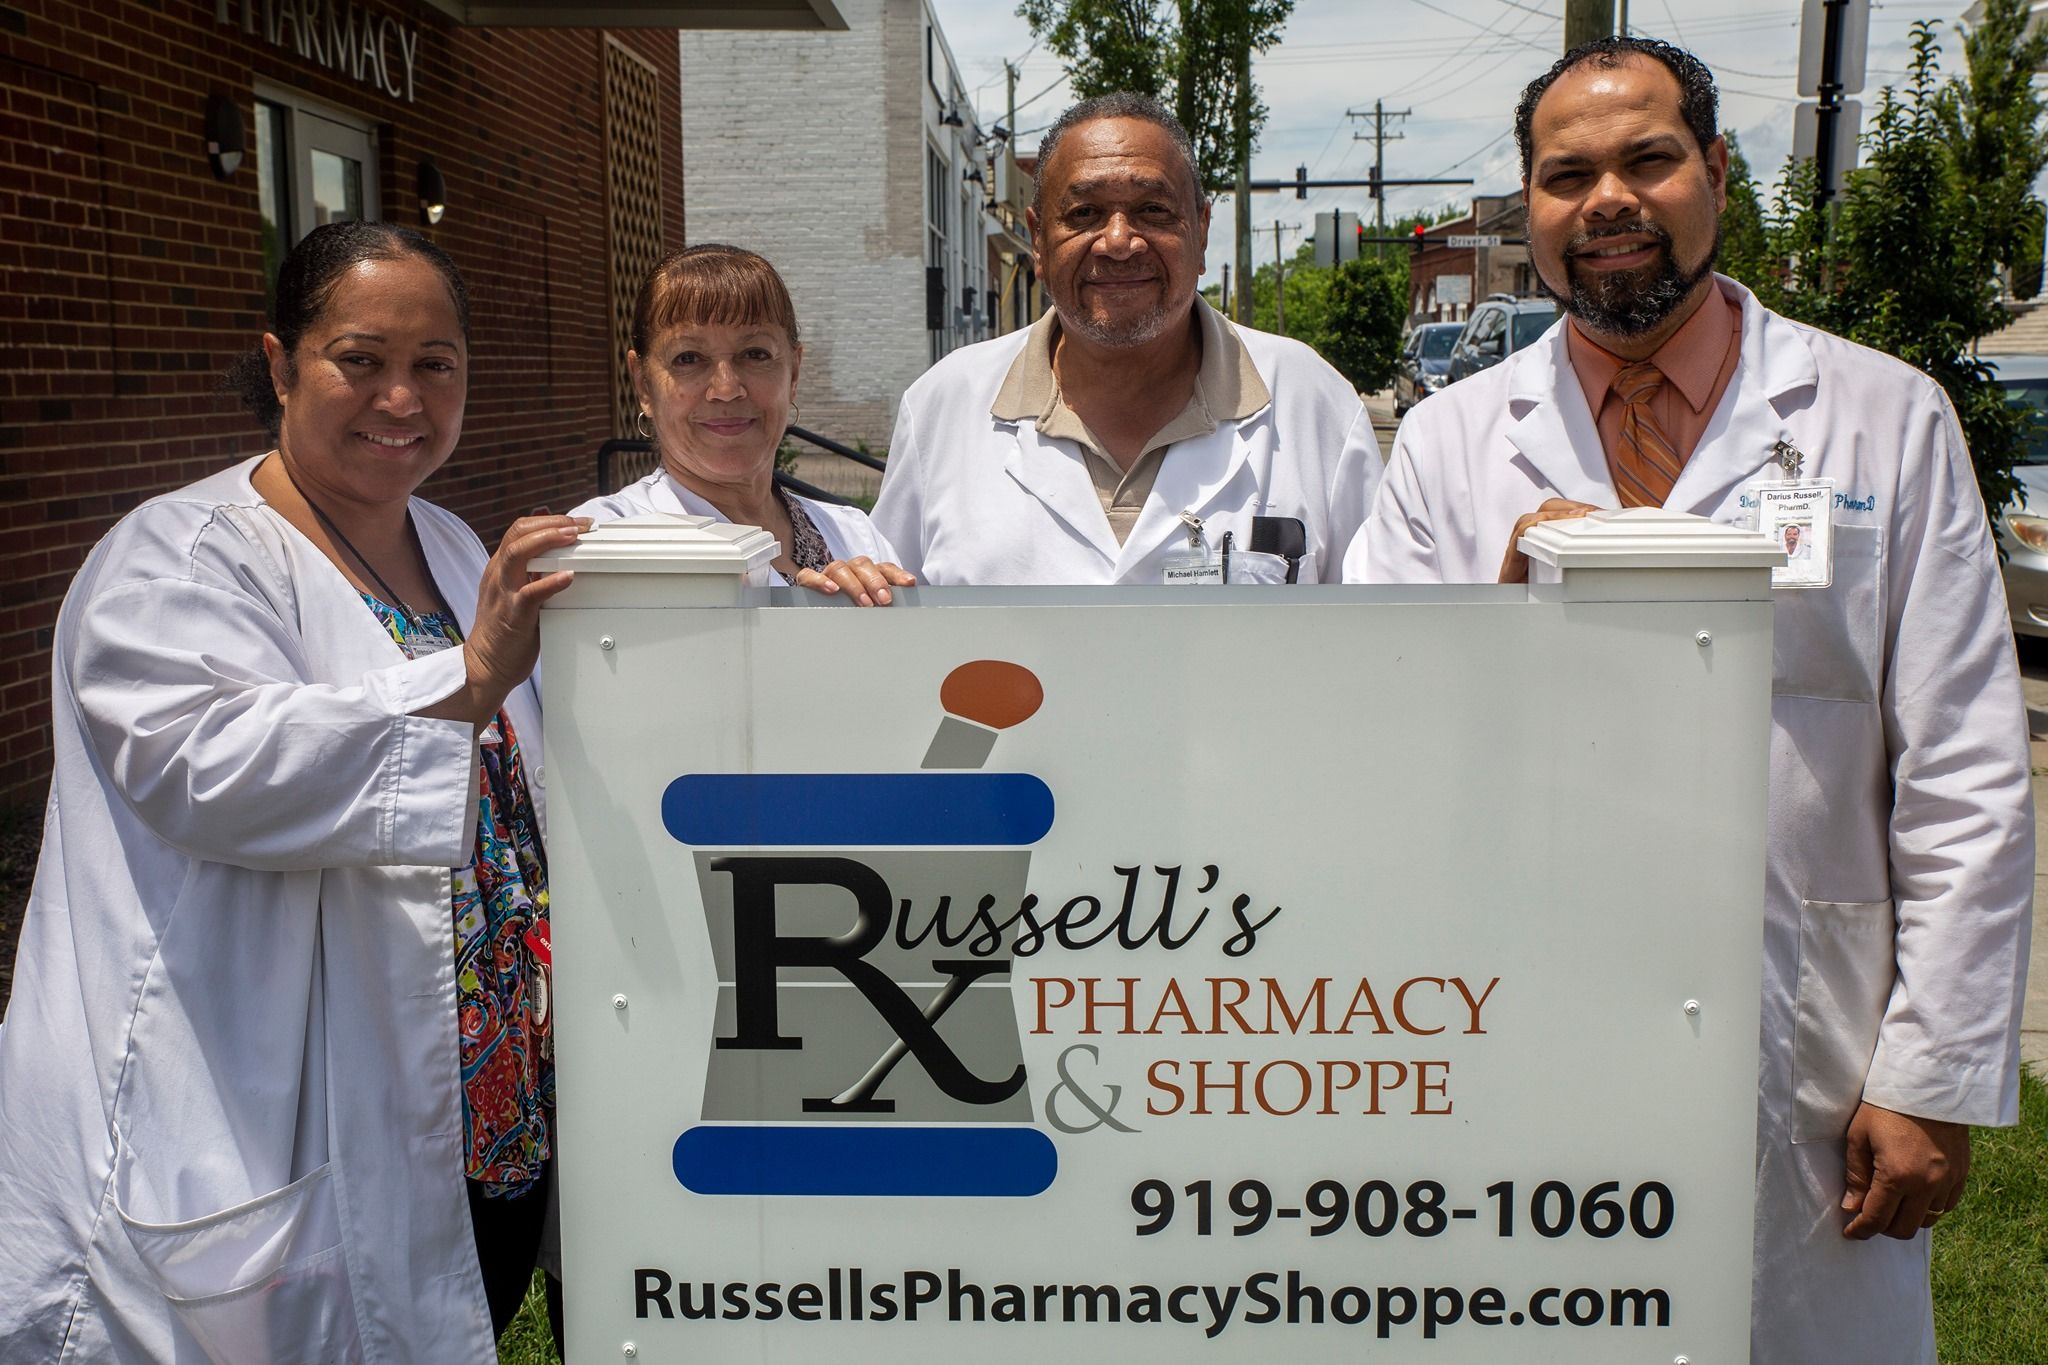 Welcome To Russell's Pharmacy & Shoppe